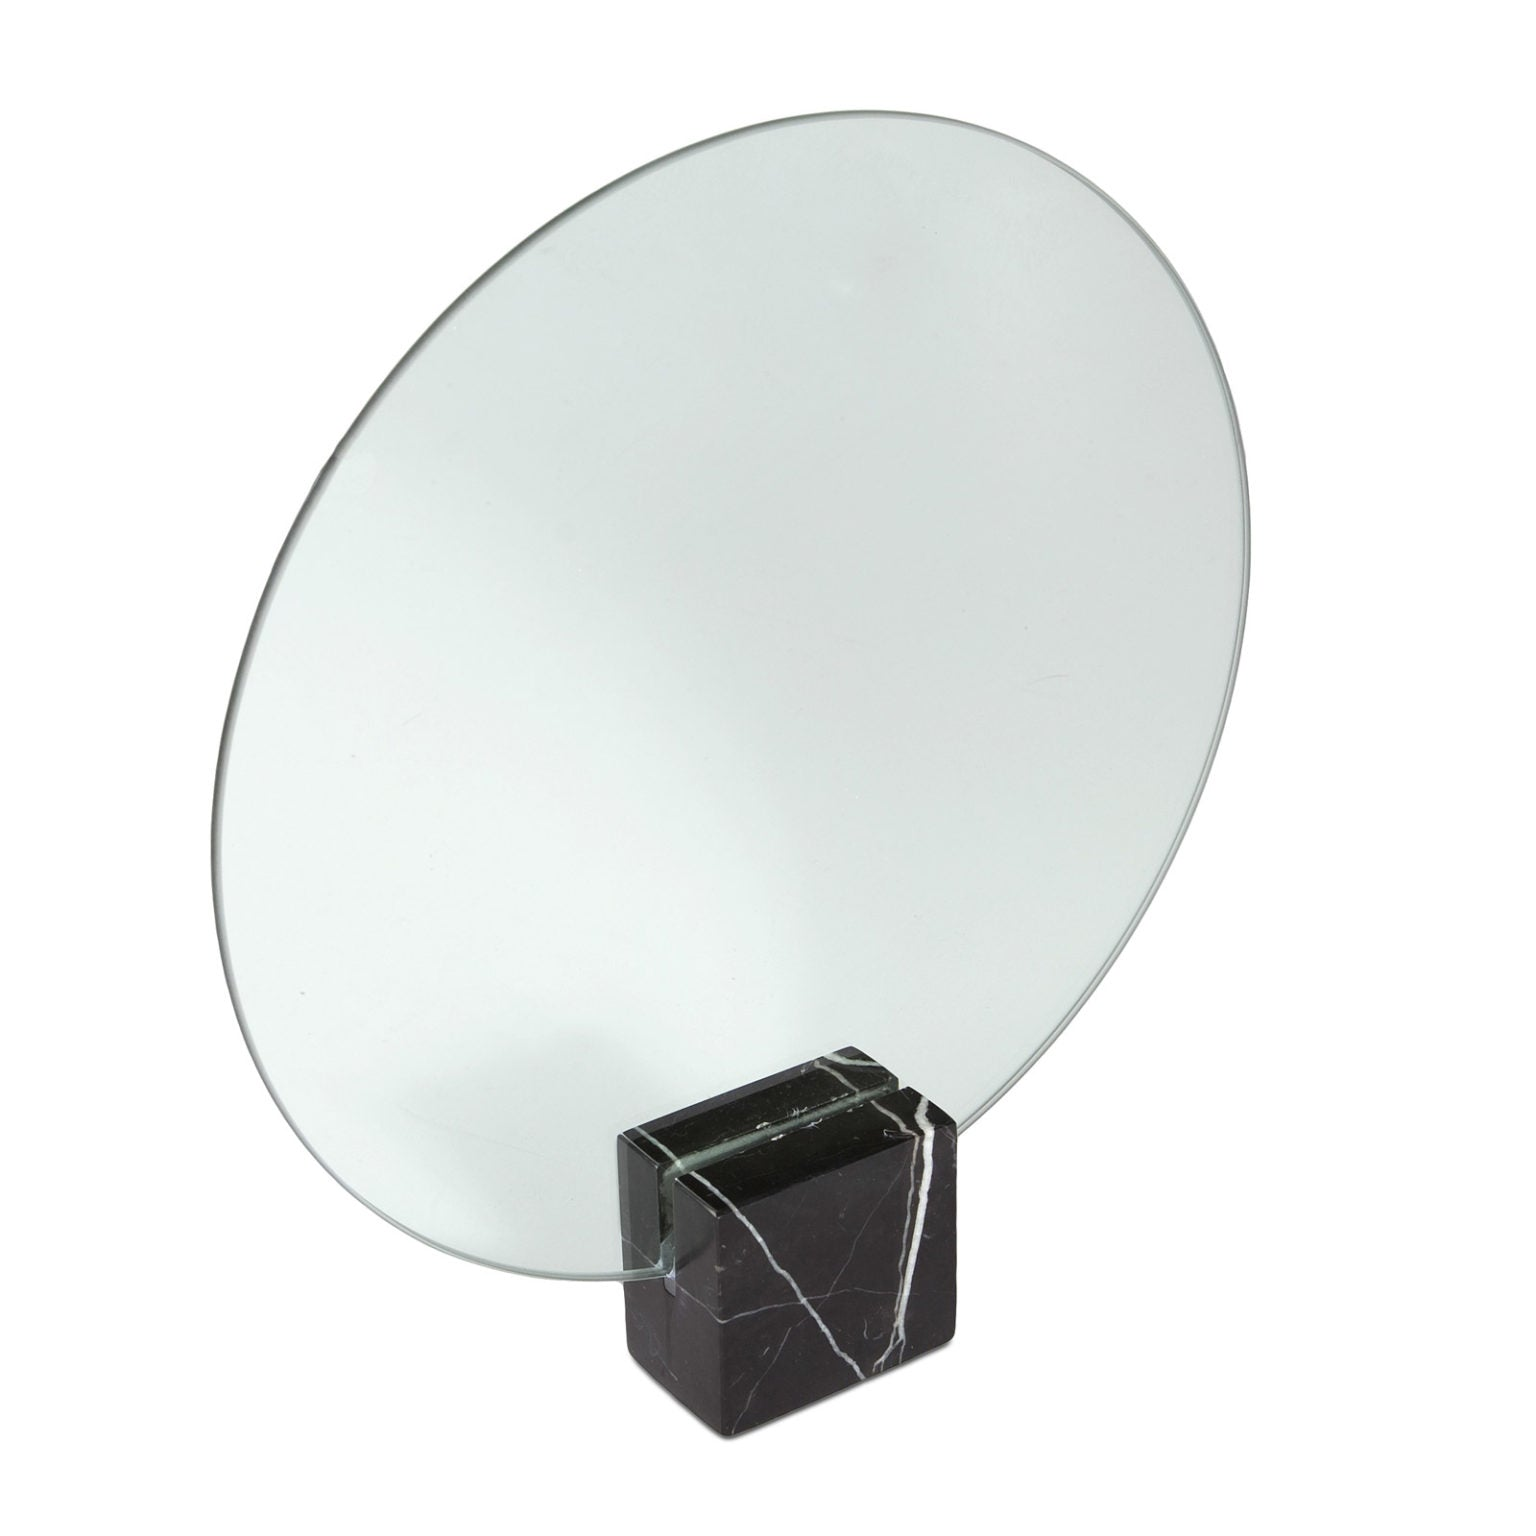 Moon Marble Mirror - Black